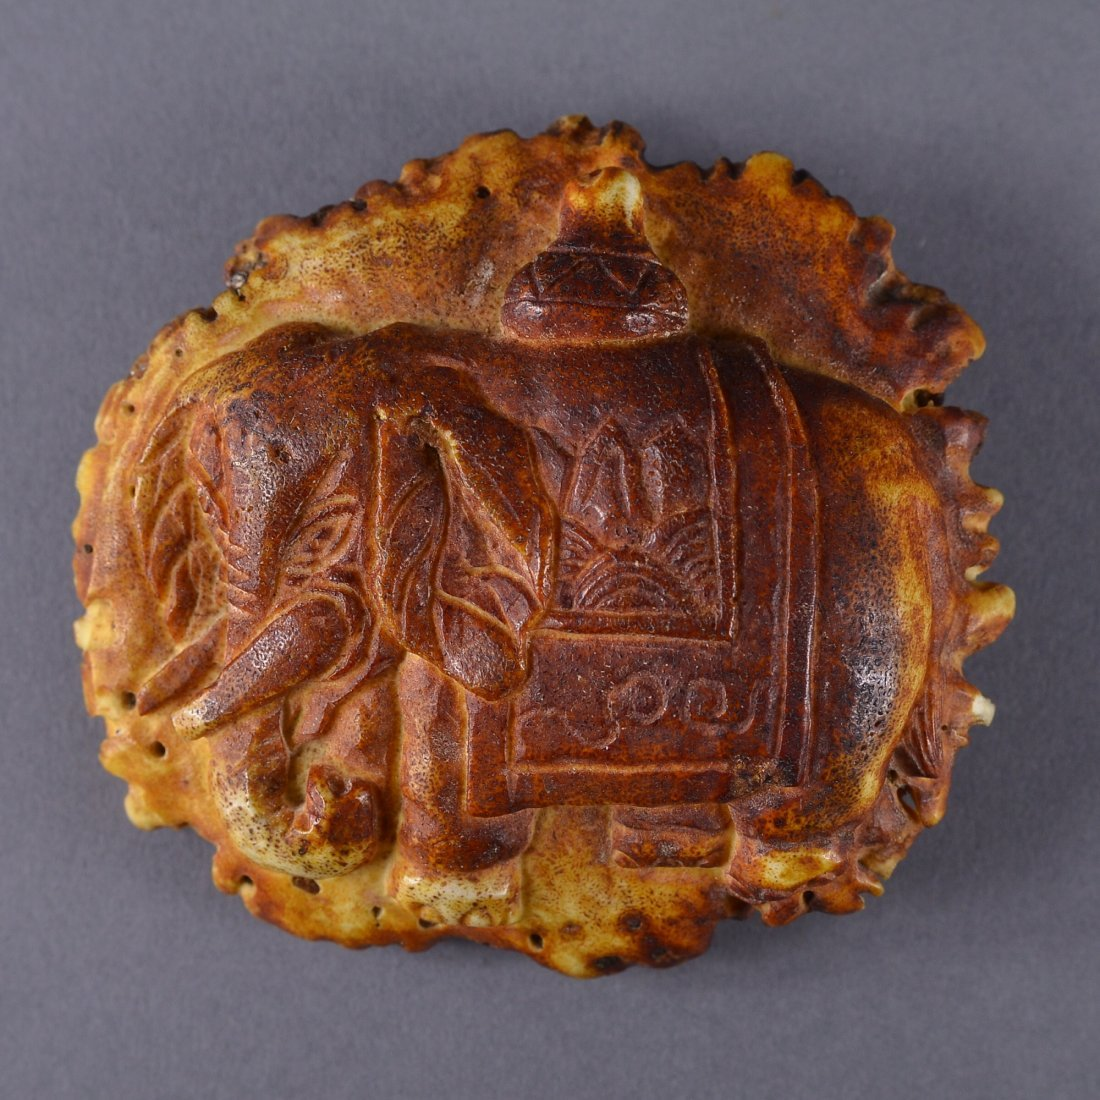 239: Chinese Carved Deer Horn in Form of Turtle Shell